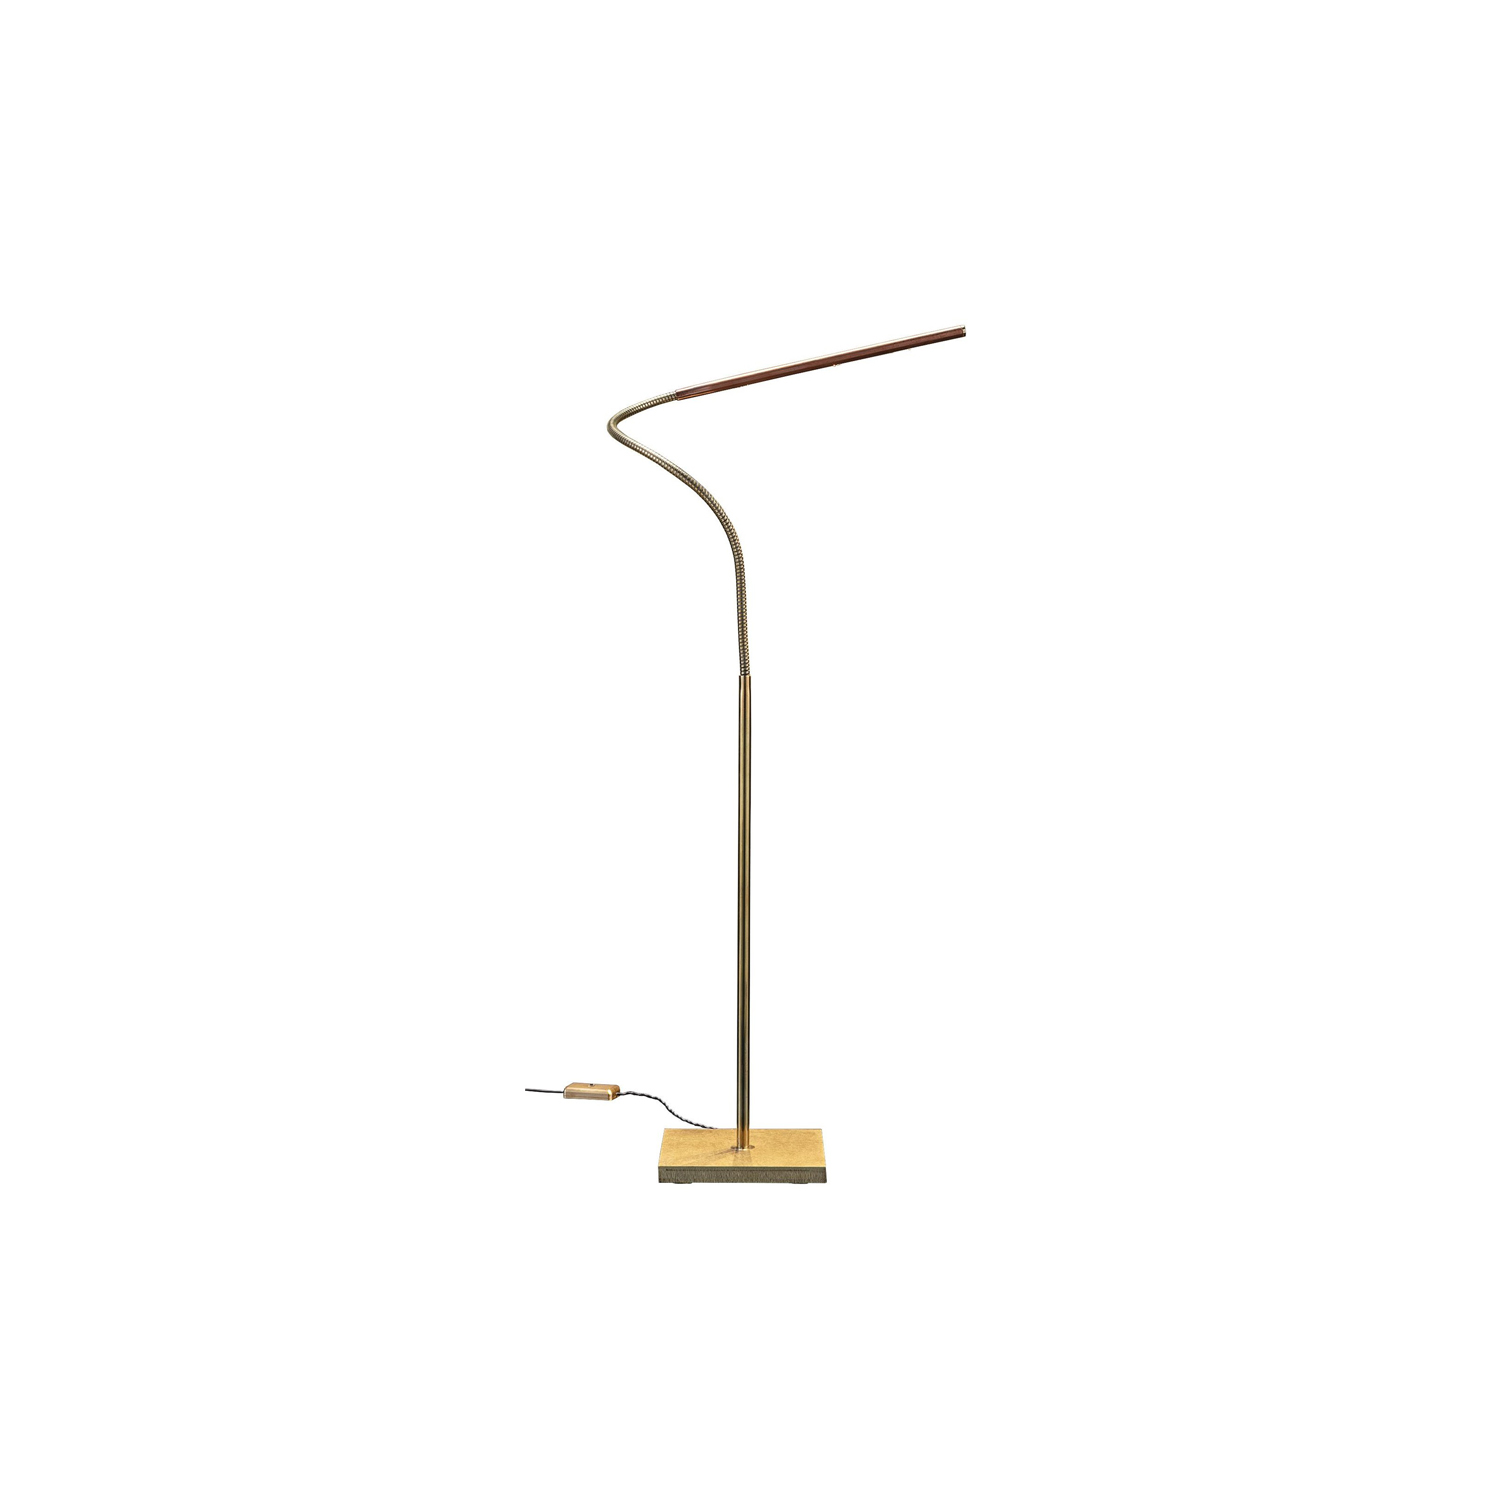 Lola T Table Lamp - Lola is discreet and practical. Its inconspicuous presence places the emphasis on light, directing it exactly where needed. Hand crafted entirely in brass, it is available as a floor or table lamp. With minimal design, Lola is the essence of light. | Matter of Stuff